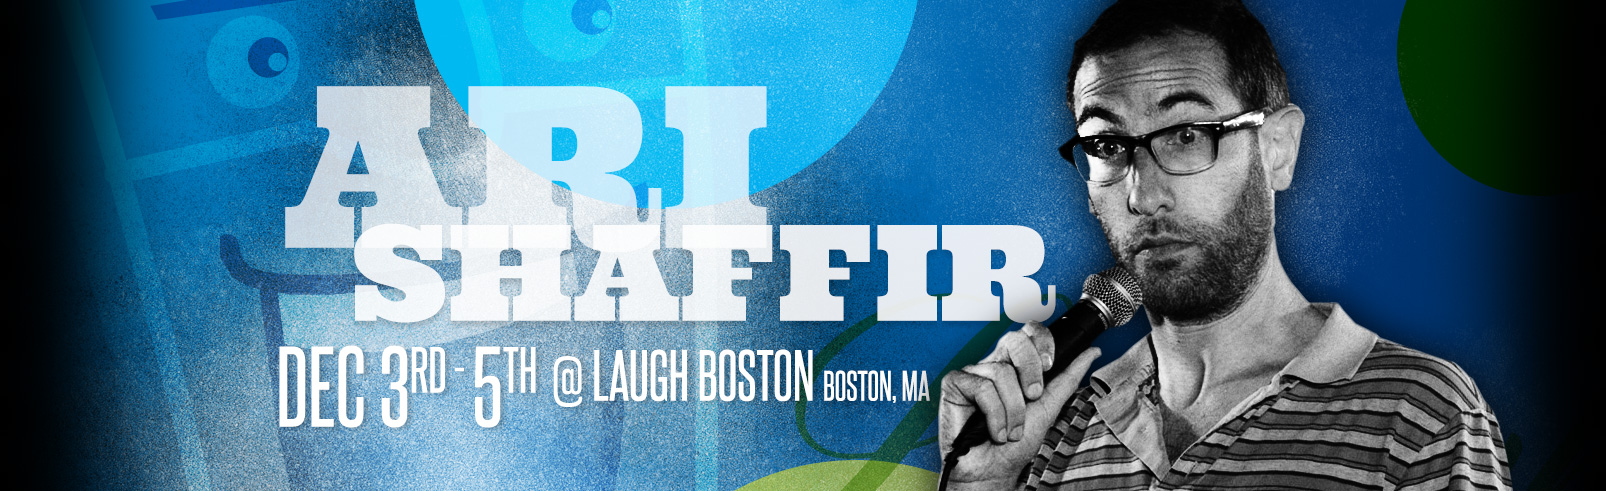 Ari Shaffir @ Laugh Boston